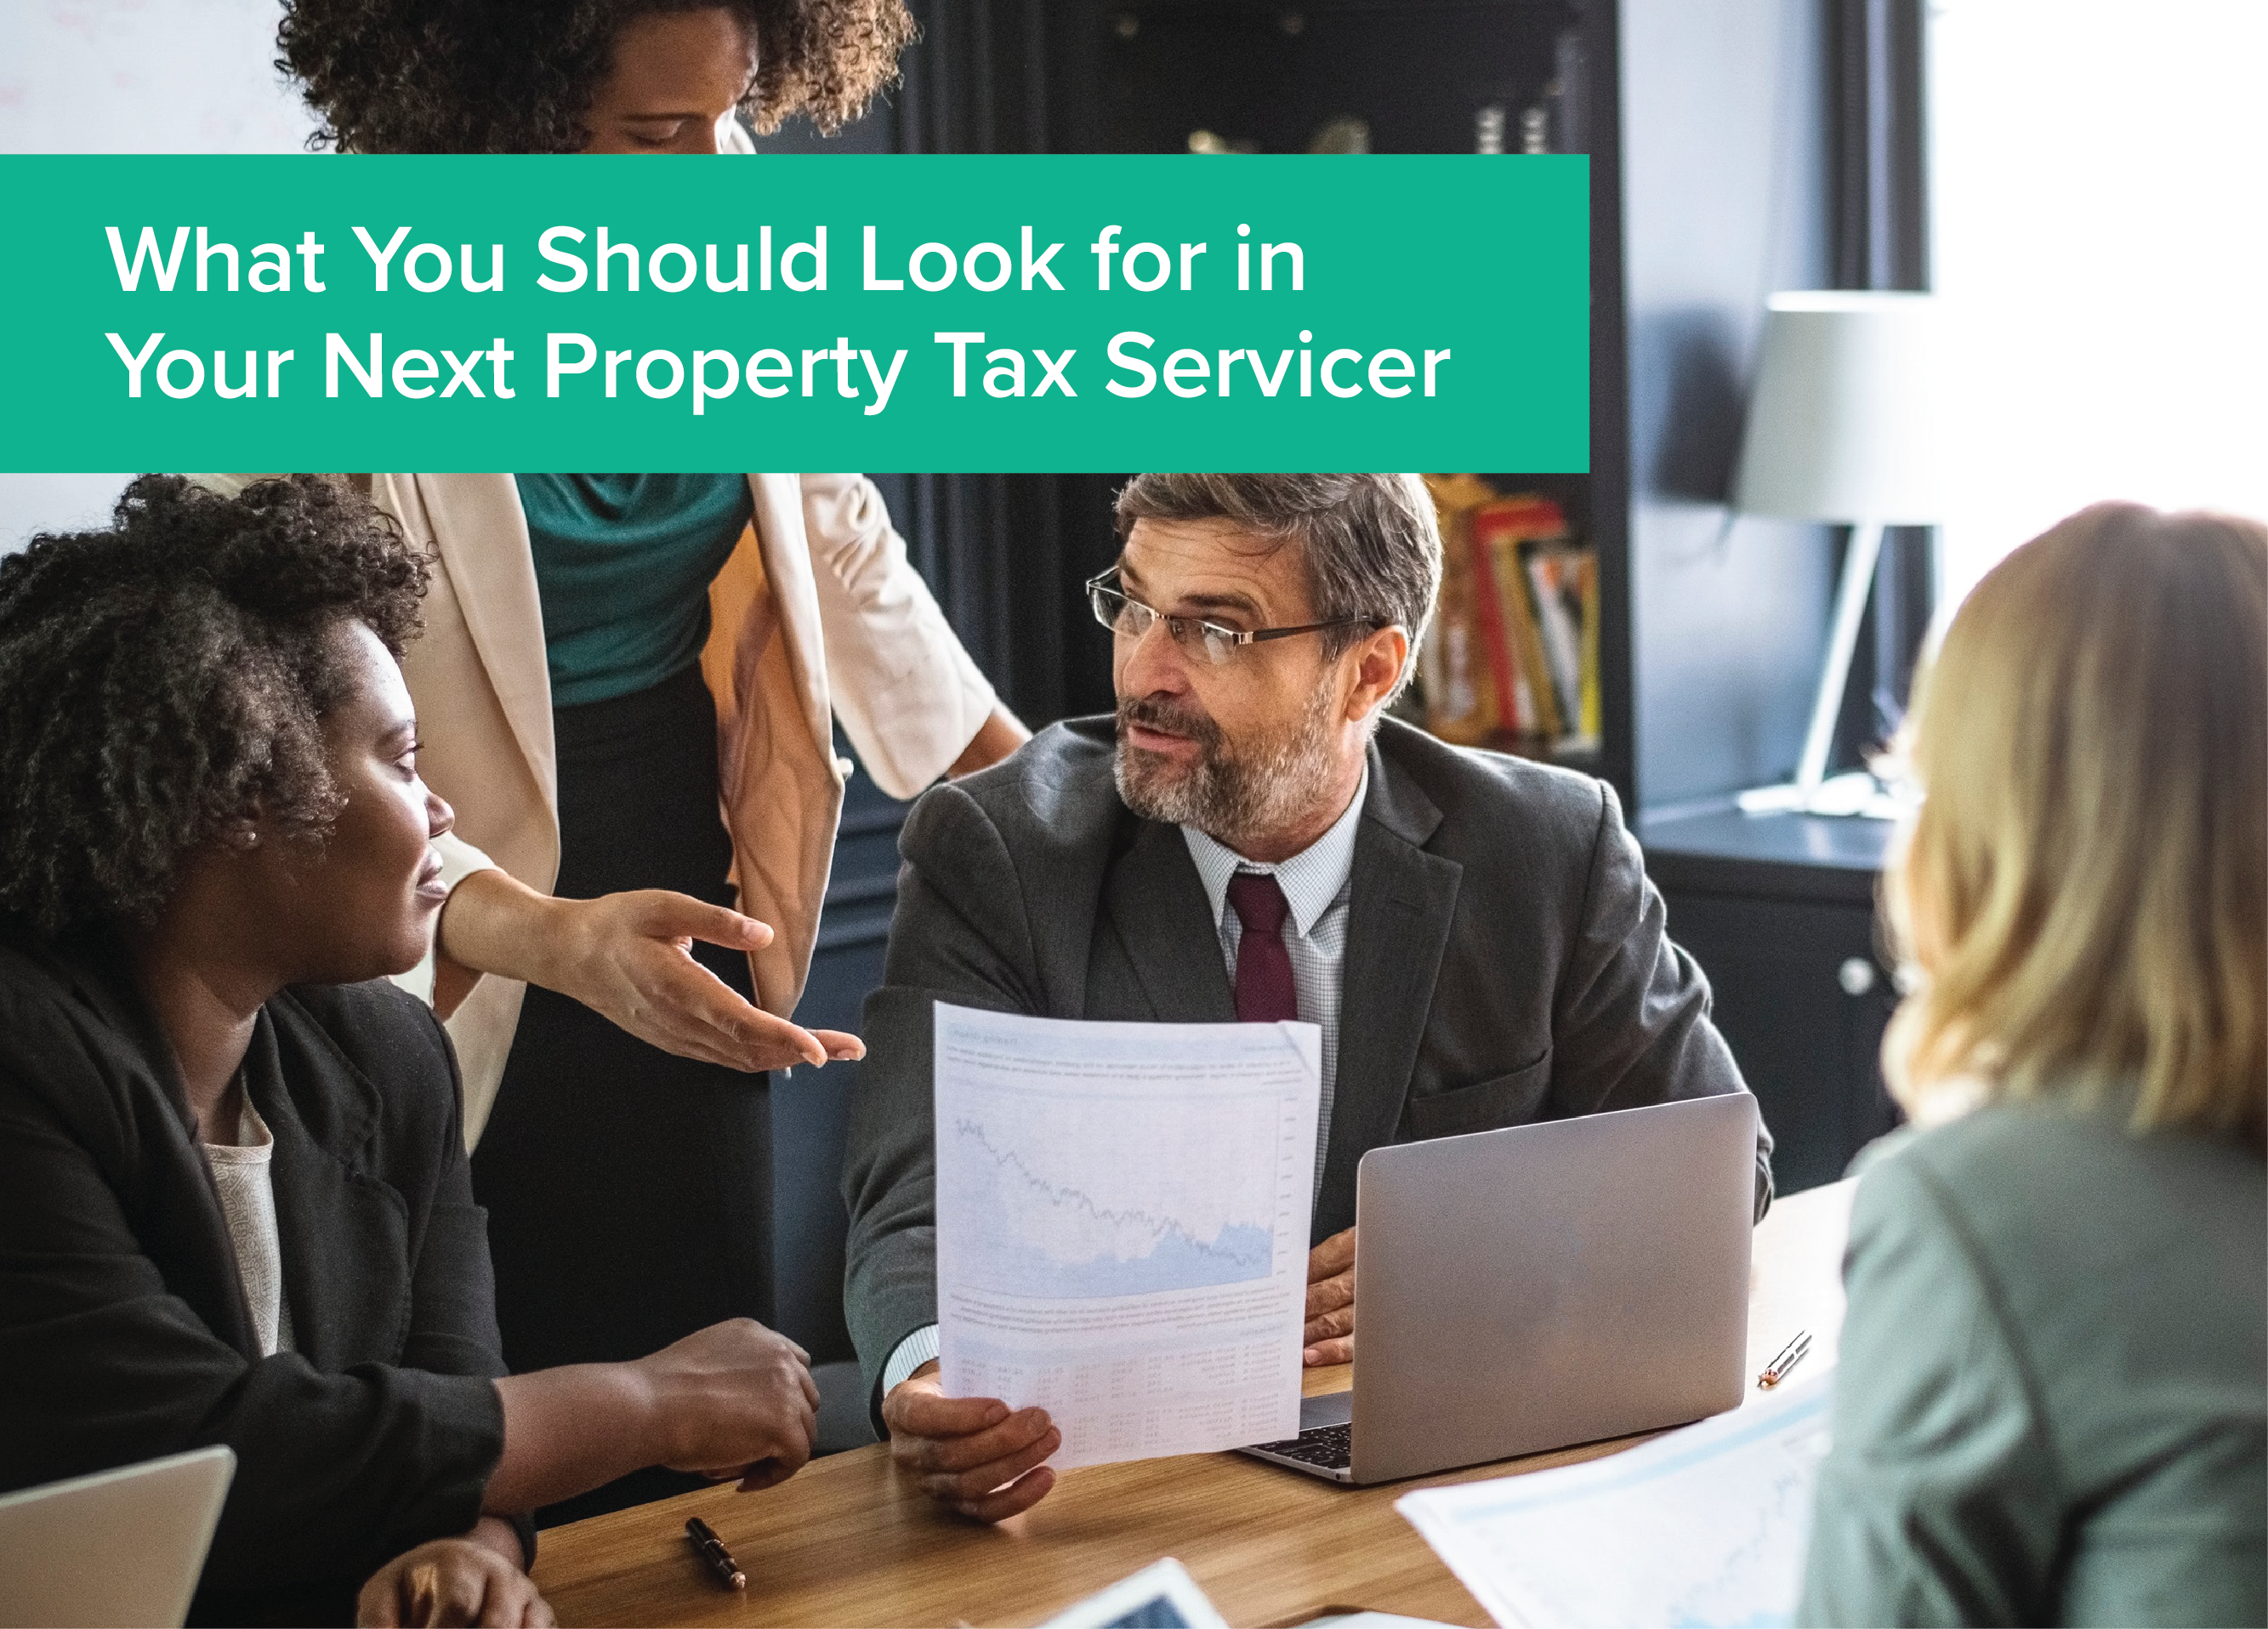 What you should look for in your next property tax servicer